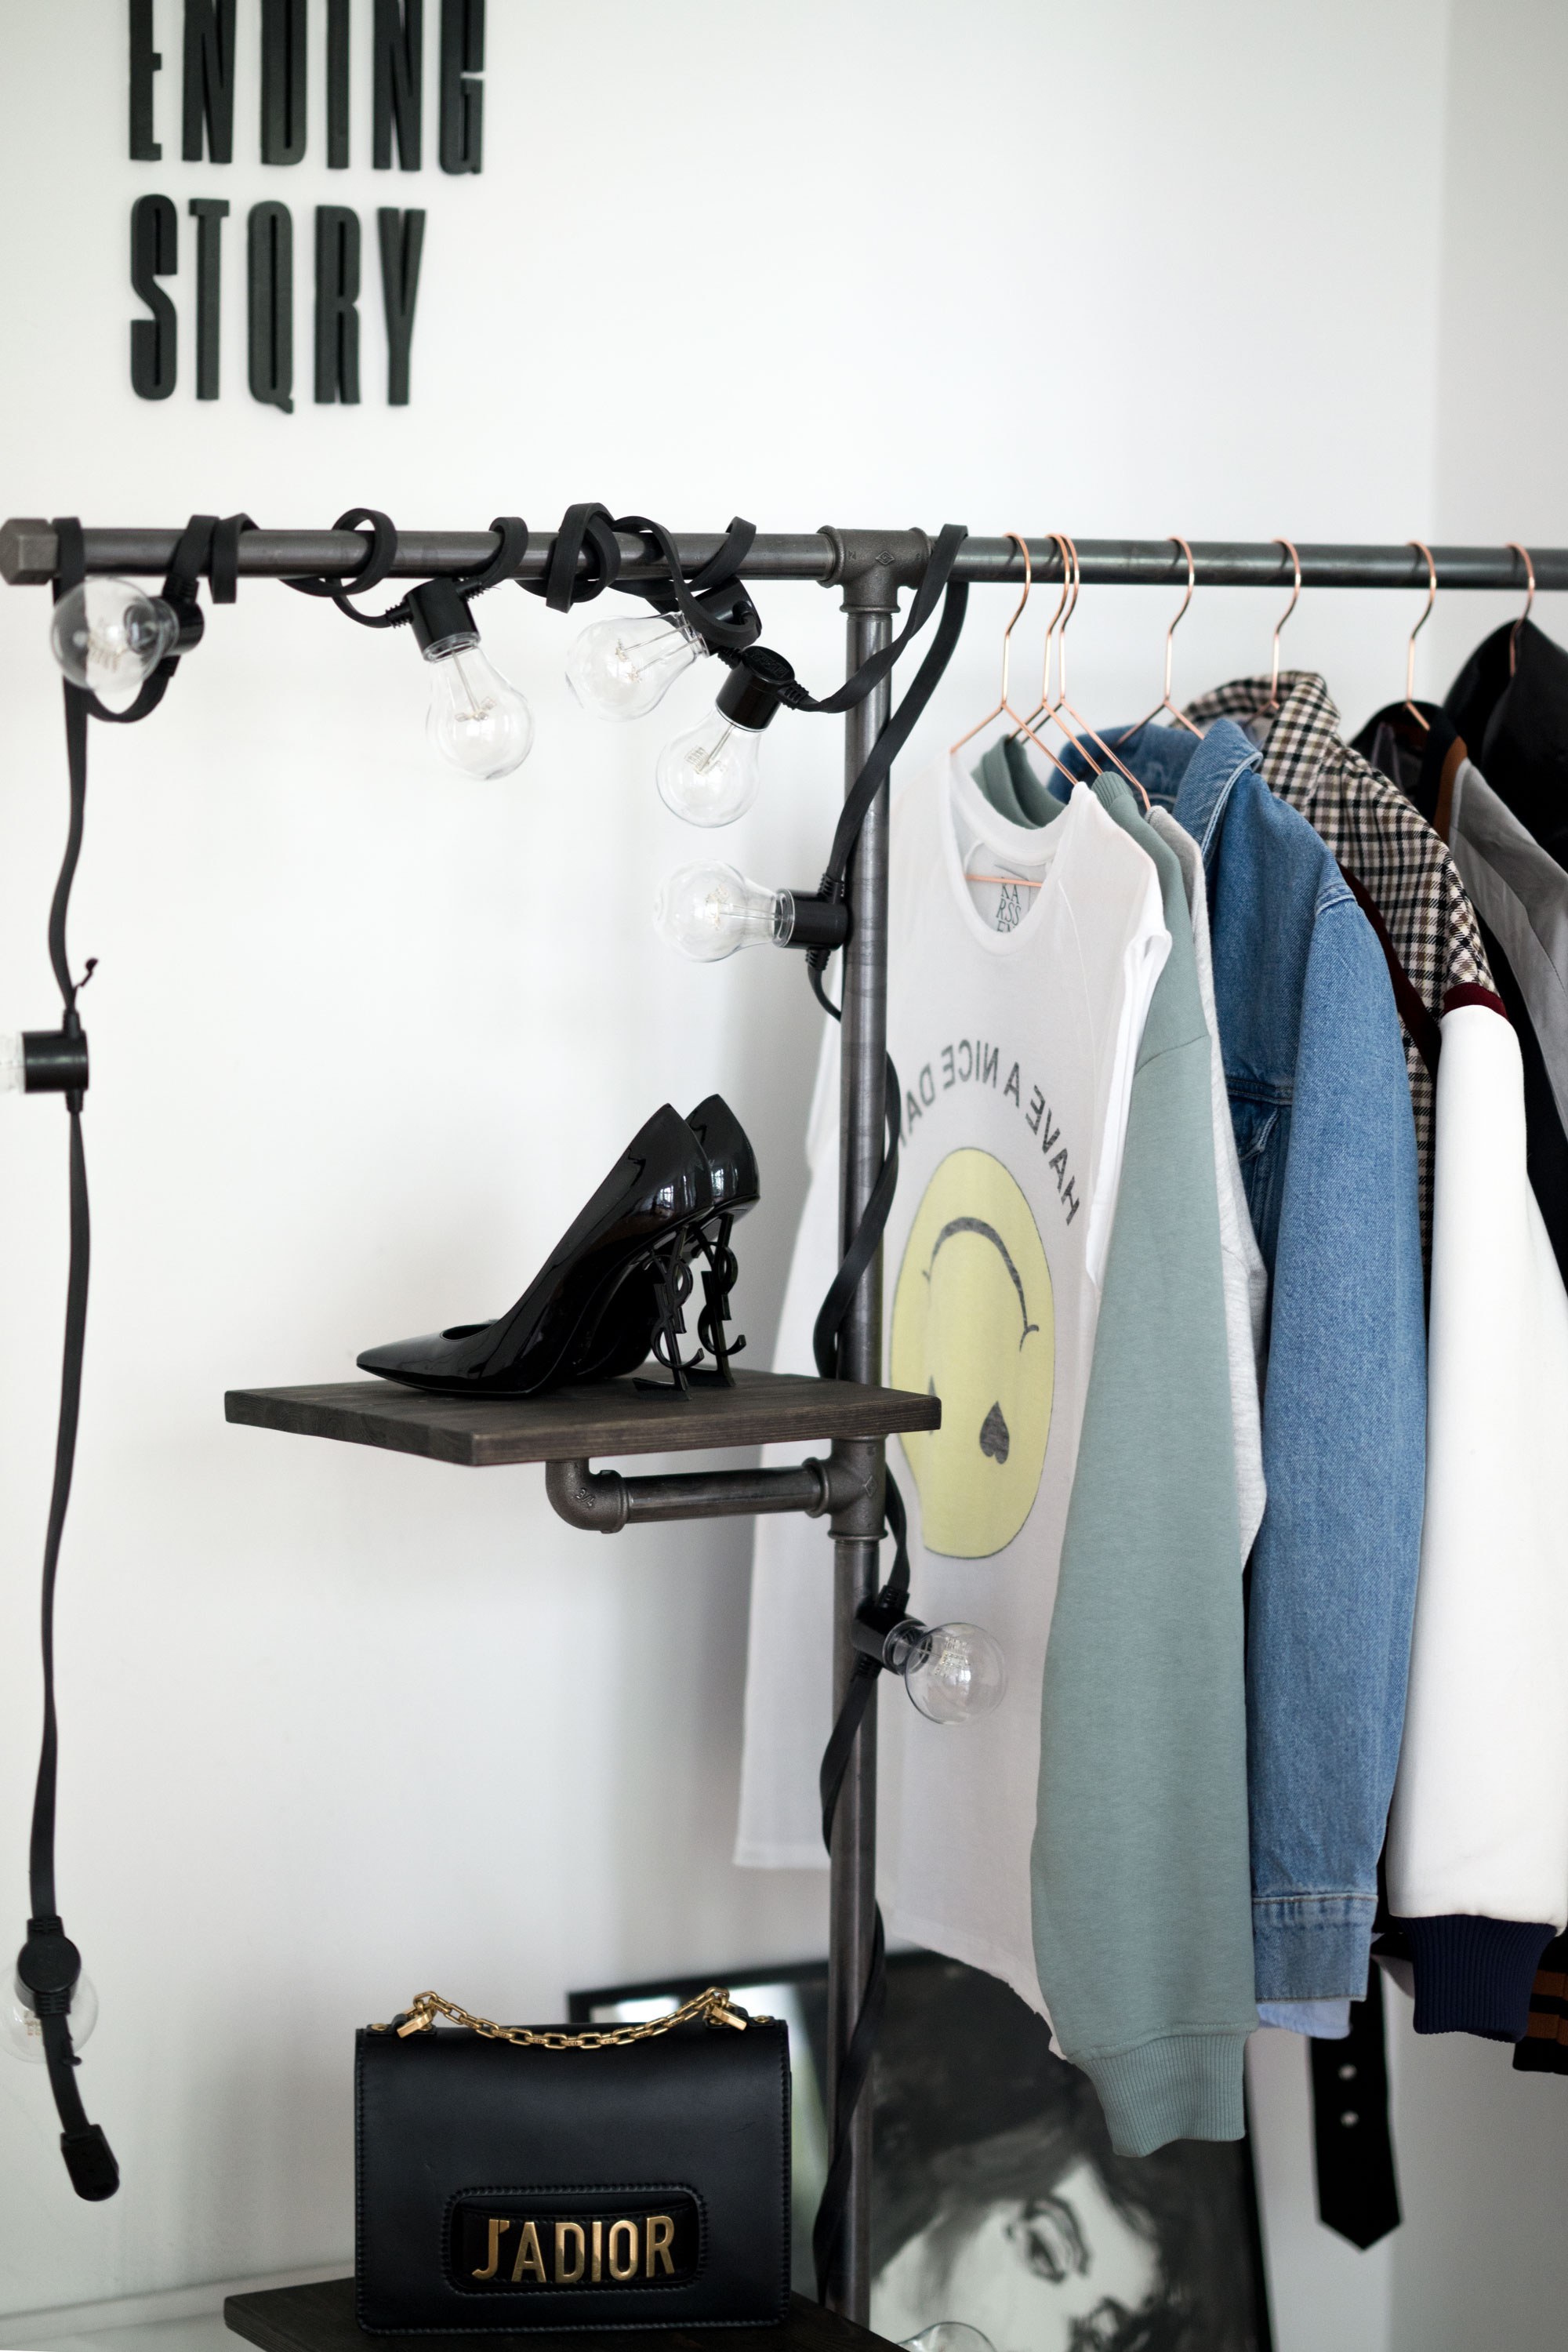 Rackbuddy clothing racks | DIY inspiration | build your own wardrobe of water pipes